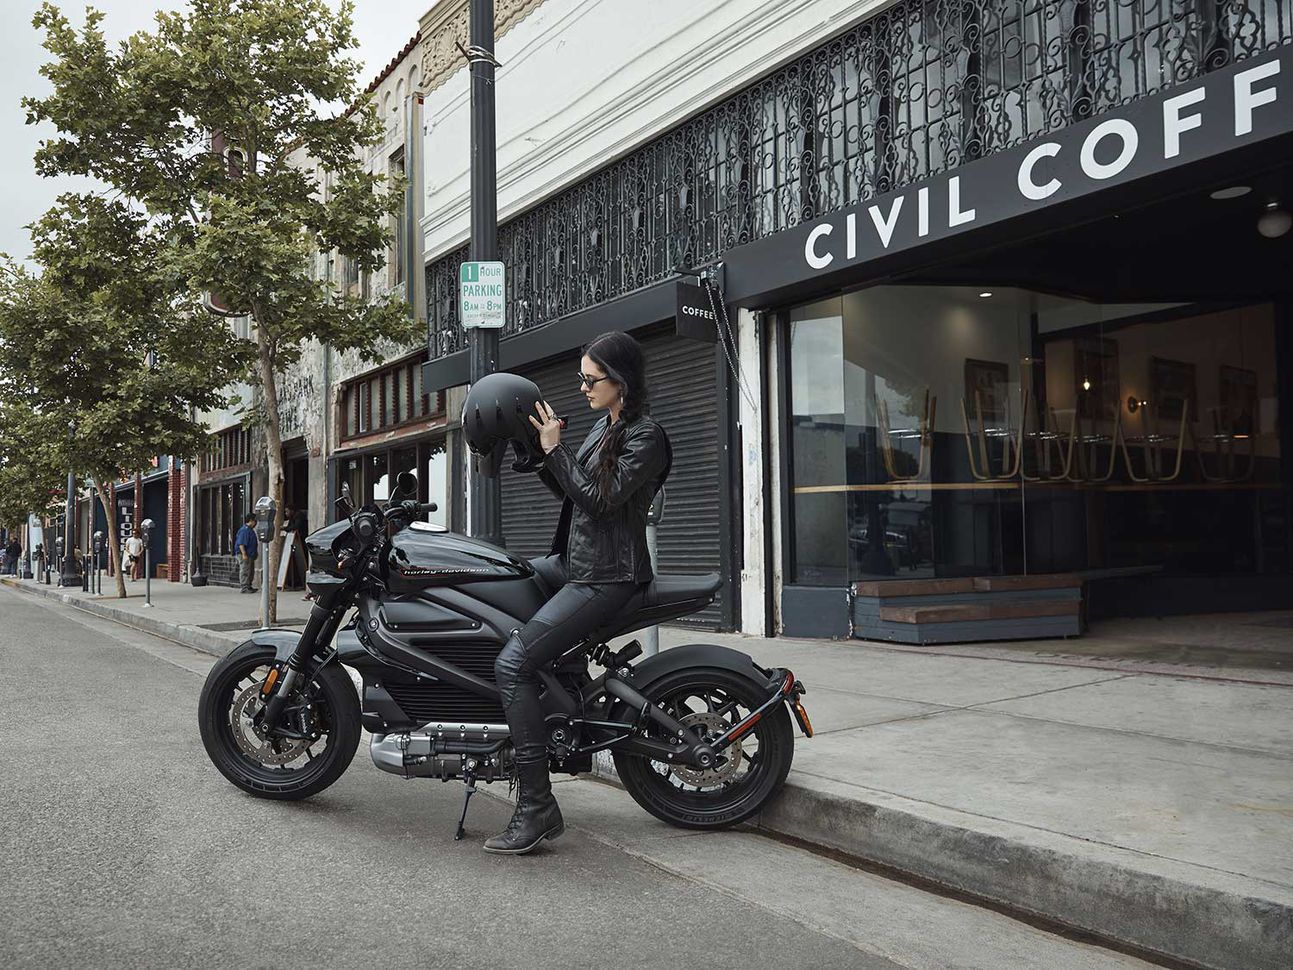 Never having to worry about stopping for gas is one advantage of the LiveWire. The technology suite of rider-assistance equipment makes for a safer, more enjoyable commute.